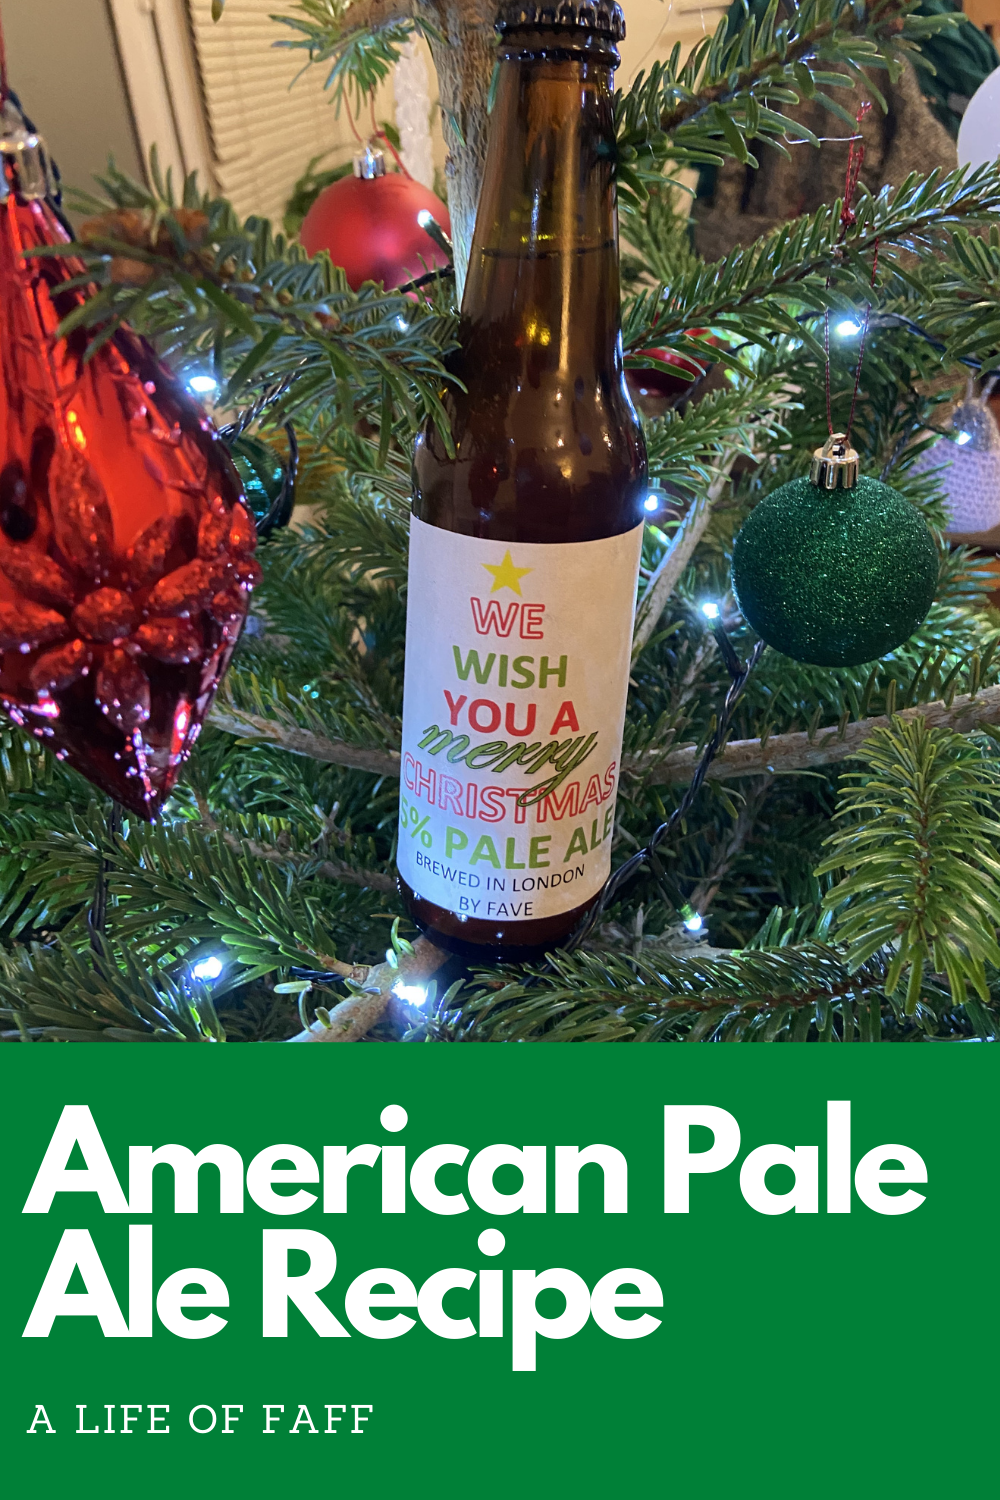 We wish you a Merry Christmas 5% pale ale pin 1 for Pinterest